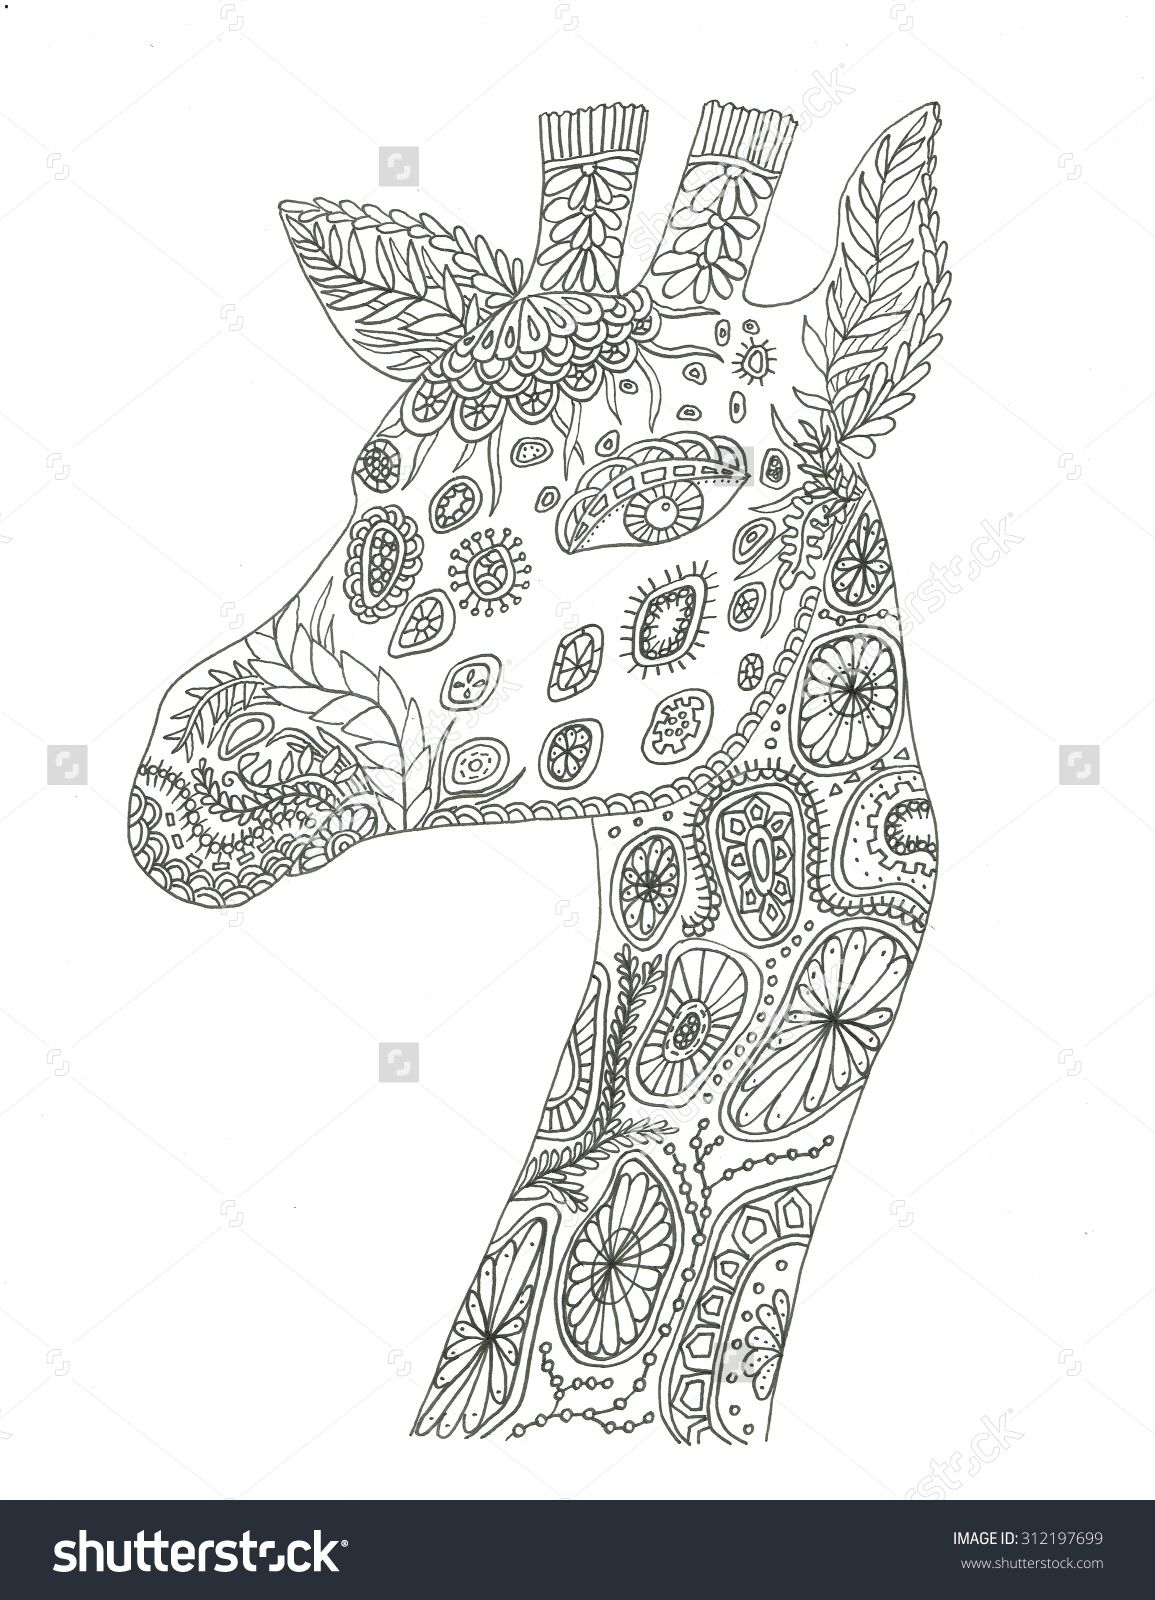 Image result for Adult coloring pages printable giraffe | Coloring ...